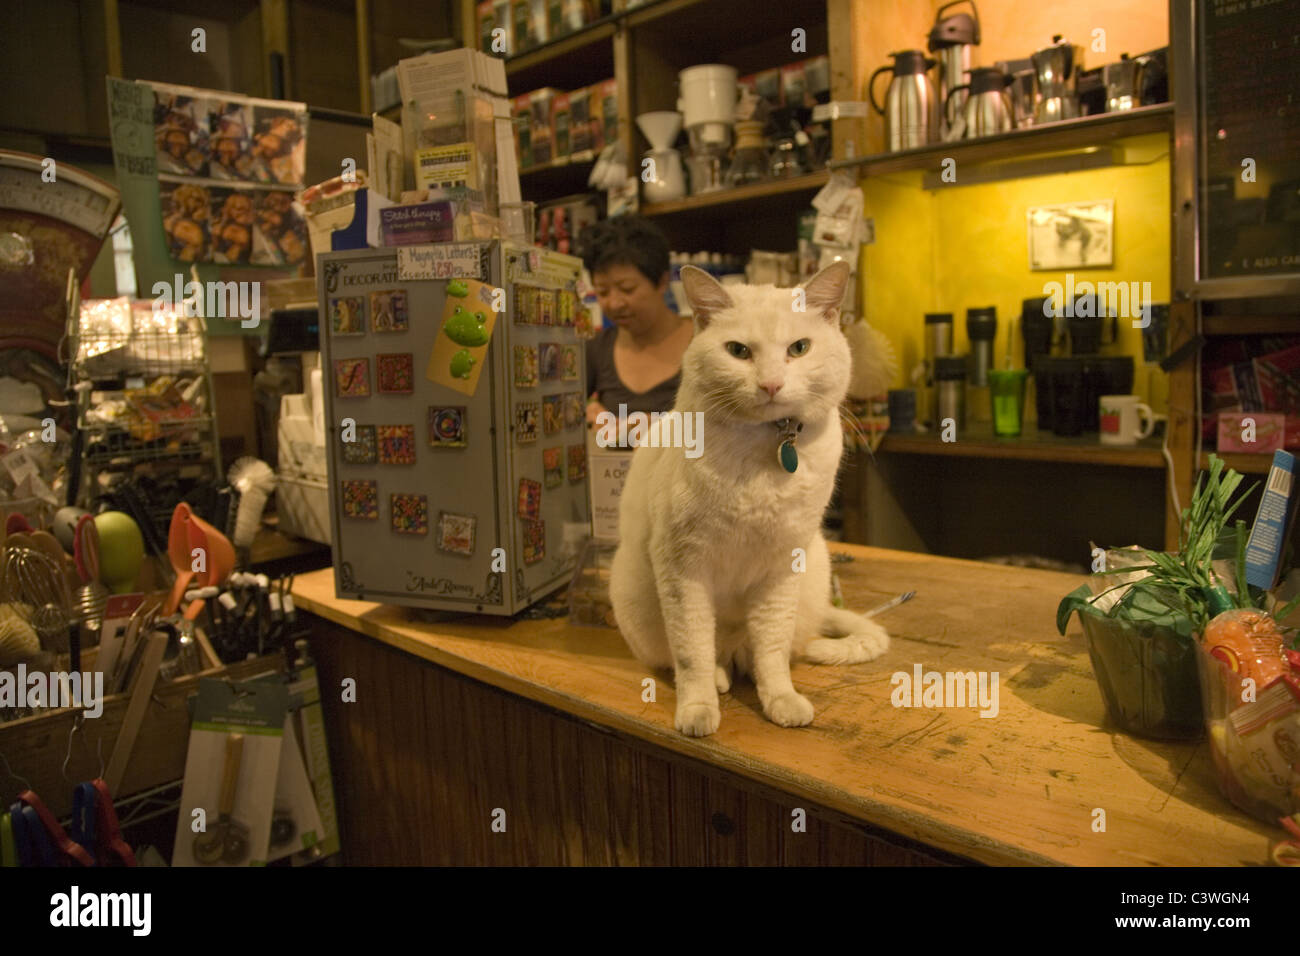 Cat greets customers at the Leaf And Bean specialty tea and coffee shop in Park Slope Brooklyn, NY. - Stock Image